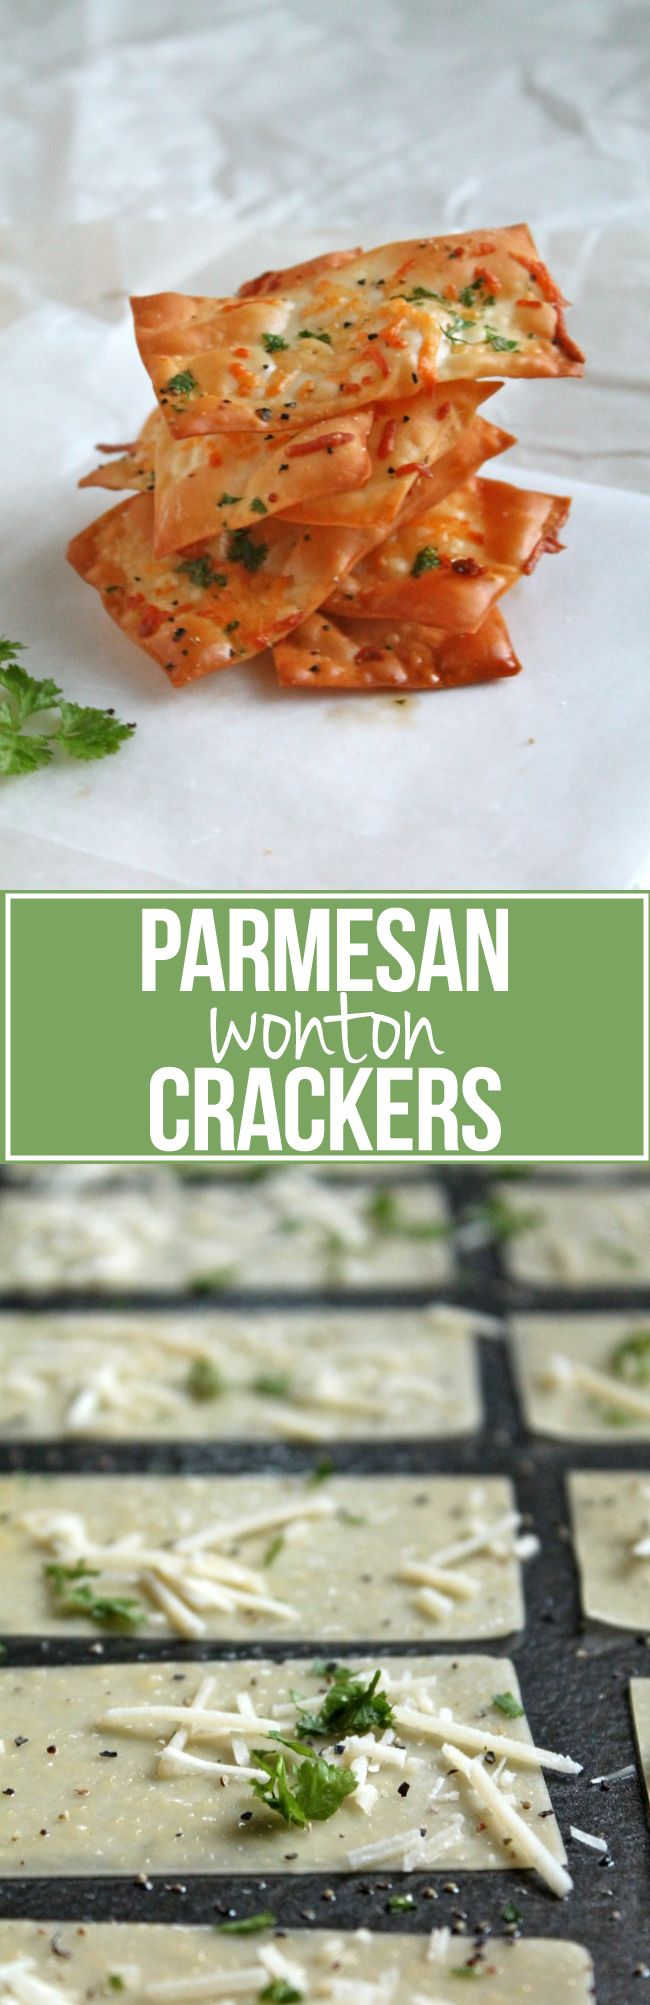 Parmesan Wonton Crackers. What to do with leftover wonton wrappers. …